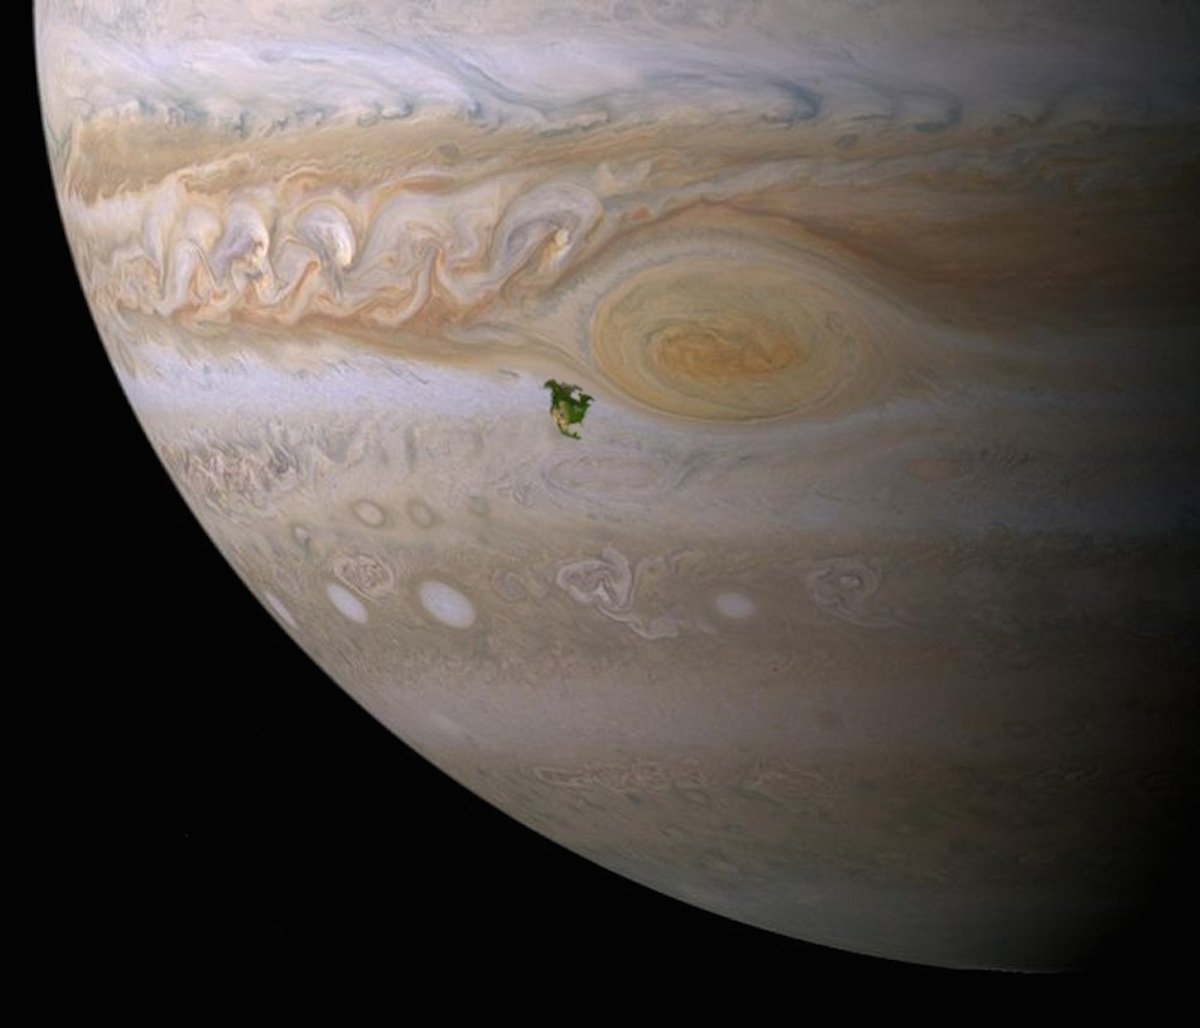 here-north-america-is-superimposed-next-to-jupiters-great-red-spot-as-you-can-see-in-this-to-scale-image-jupiters-giant-storm-would-completely-swallow-the-entire-continent